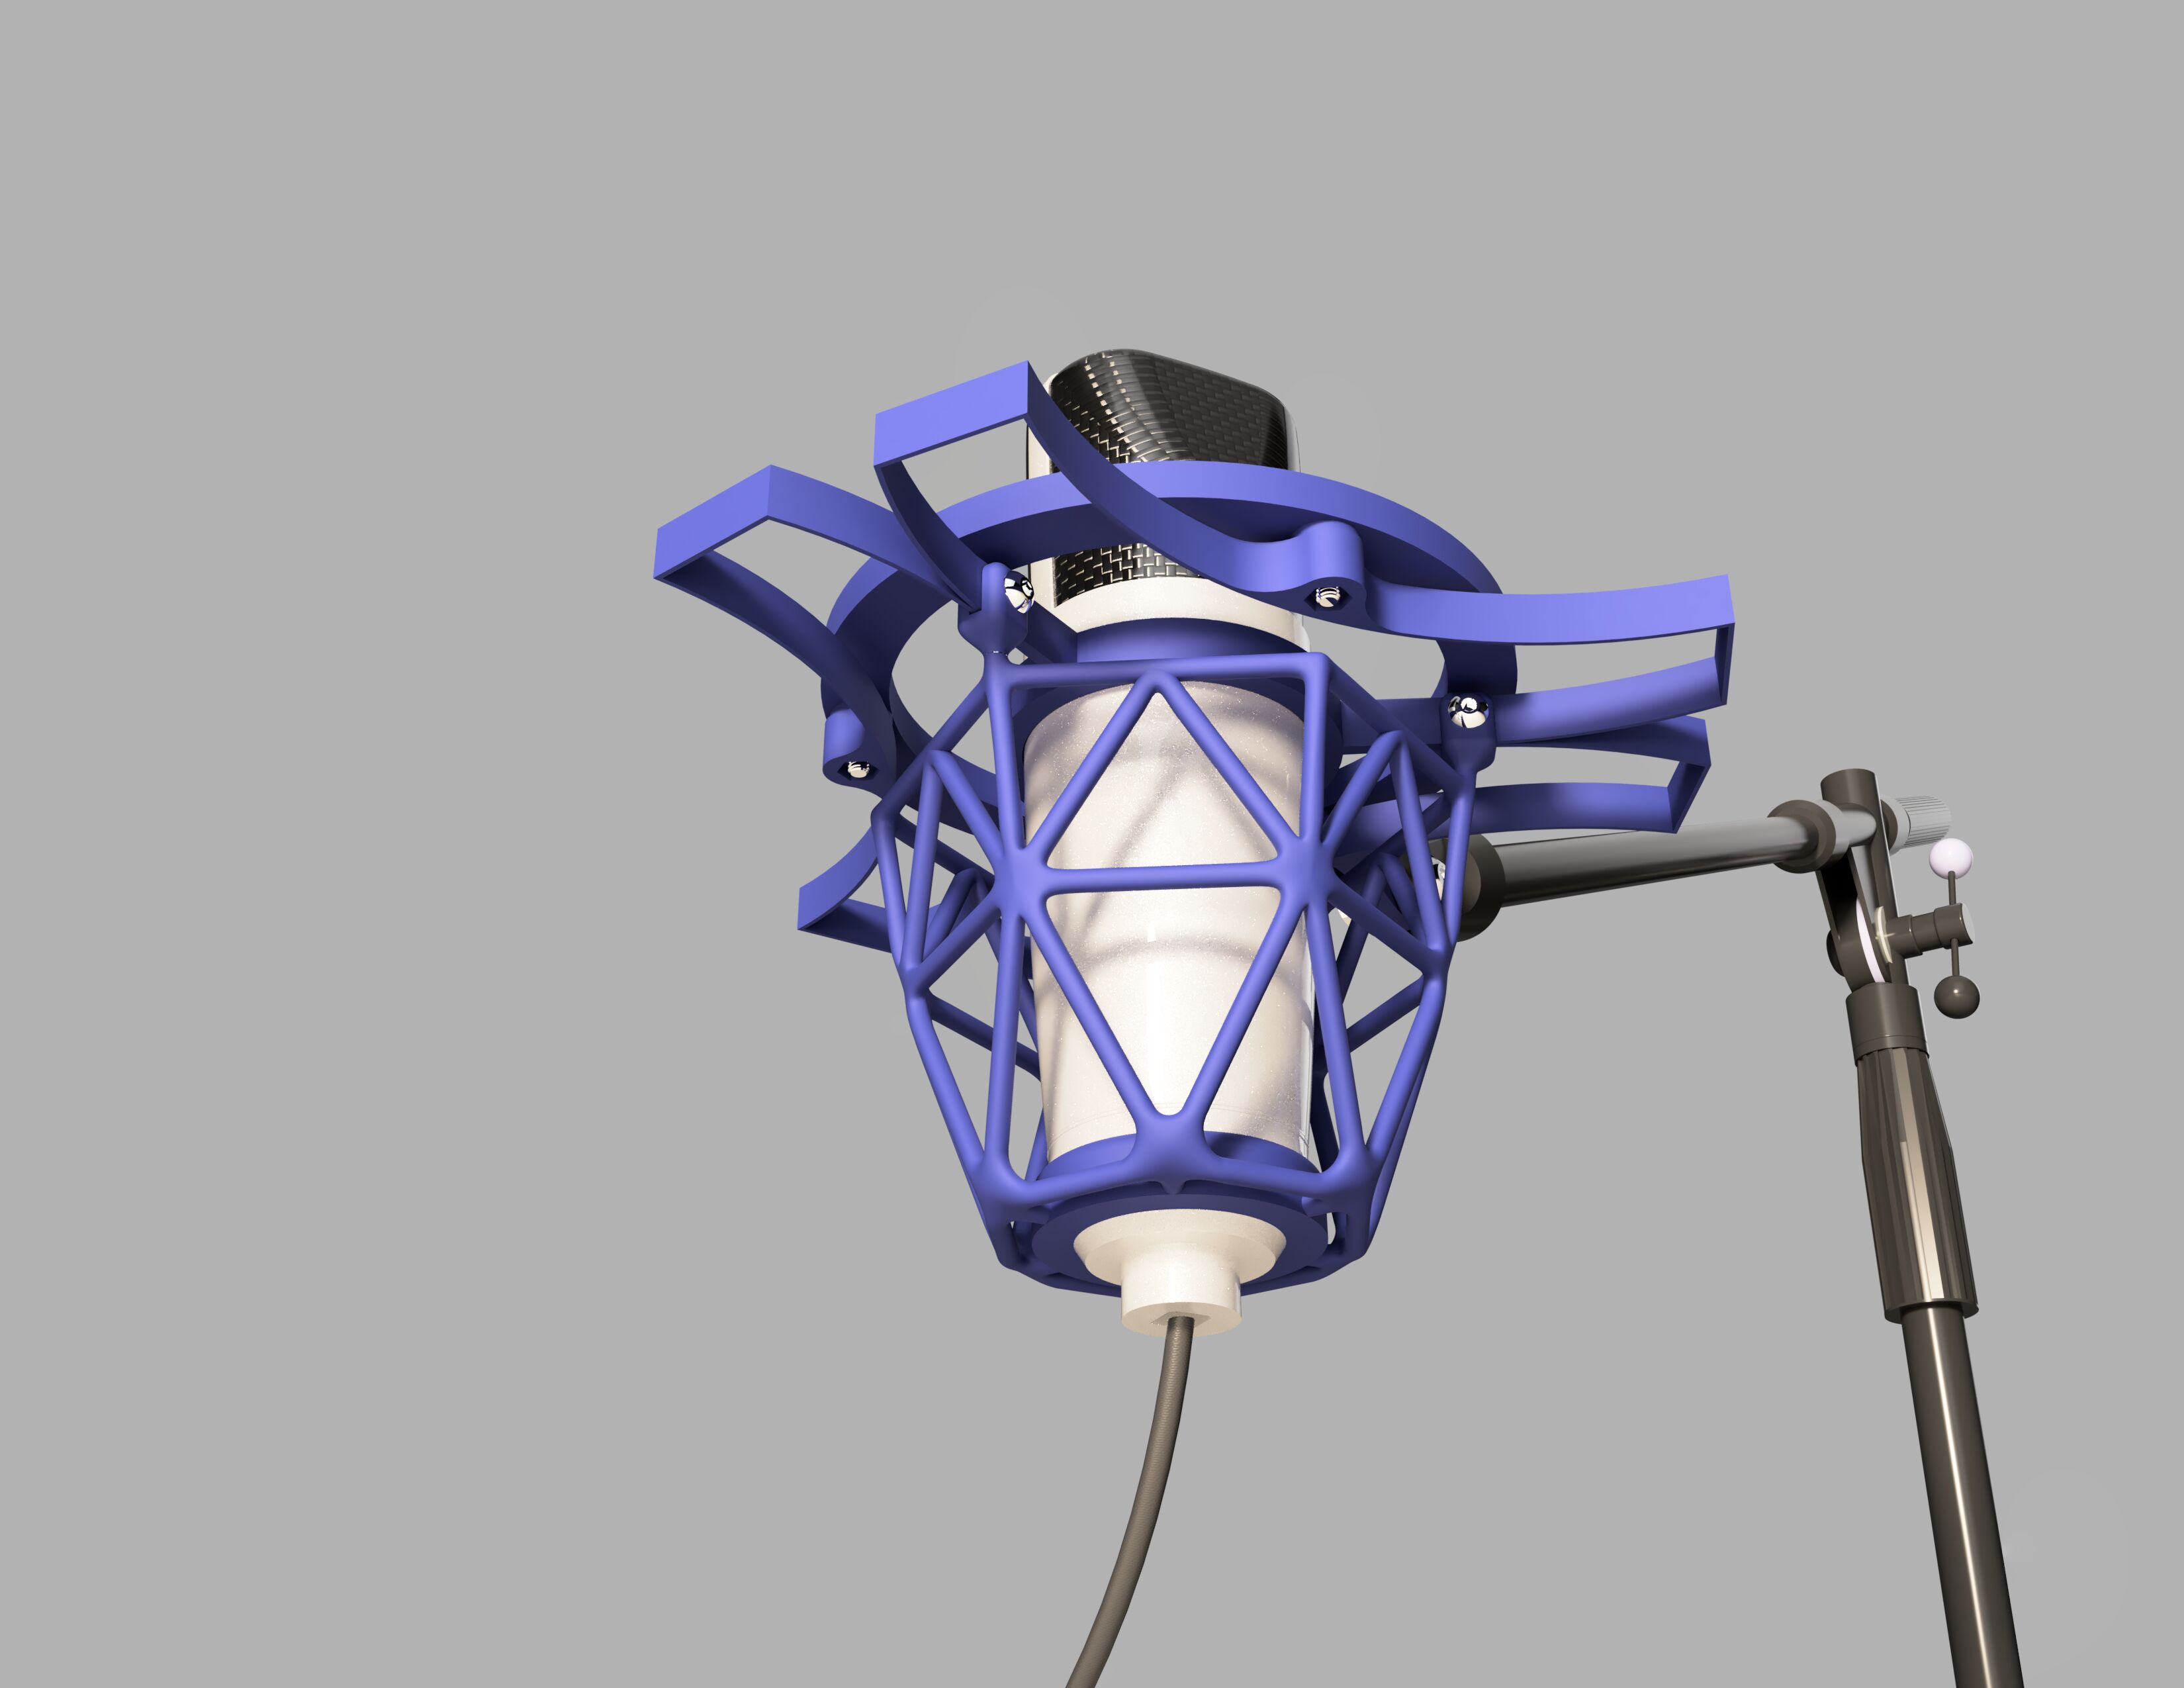 Microphone-shock-mount-assembly-2020-jun-23-12-53-38pm-000-customizedview31363944864-png-3500-3500